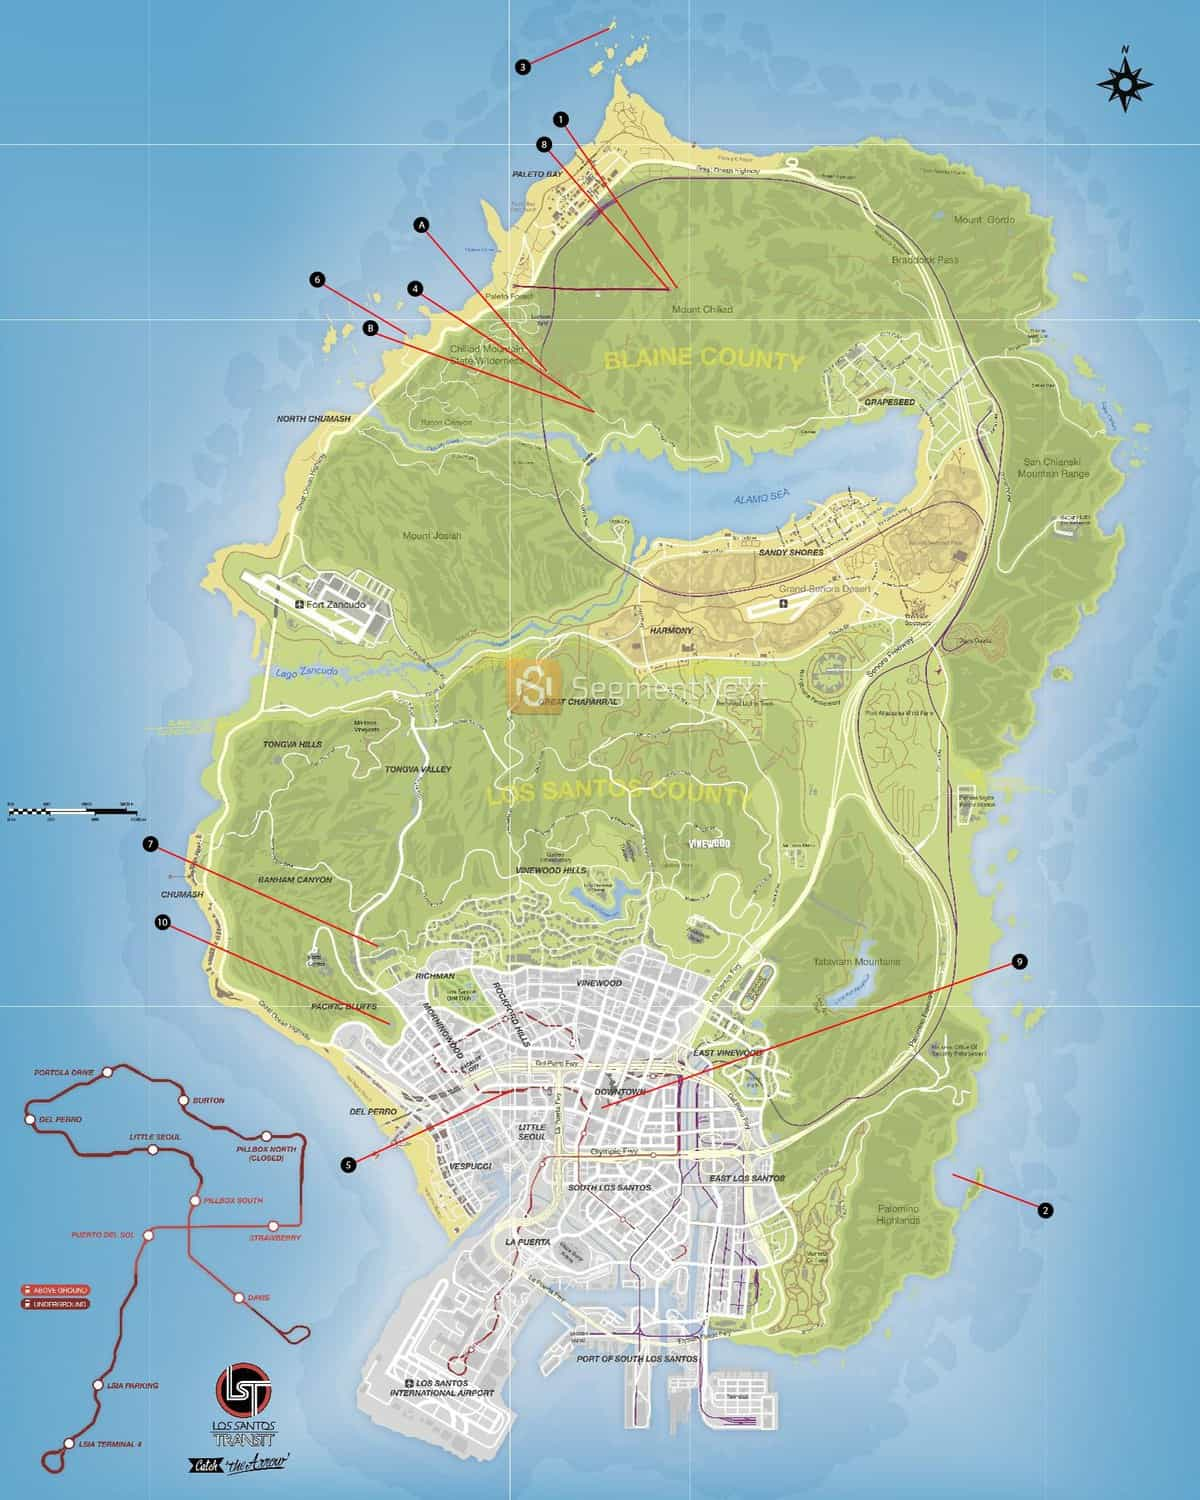 grand theft auto 5 helicopter locations with Gta 5 Epsilon Tracts Locations Guide on Where Is The Helicopter In Gta 5 Secret Locations also Grand Theft Auto 5 Gta V Cheats Tips Tricks Guides More additionally Customs specific item in addition Gta San Andreas Store Locations furthermore Grandtheftauto5cheatscodes.